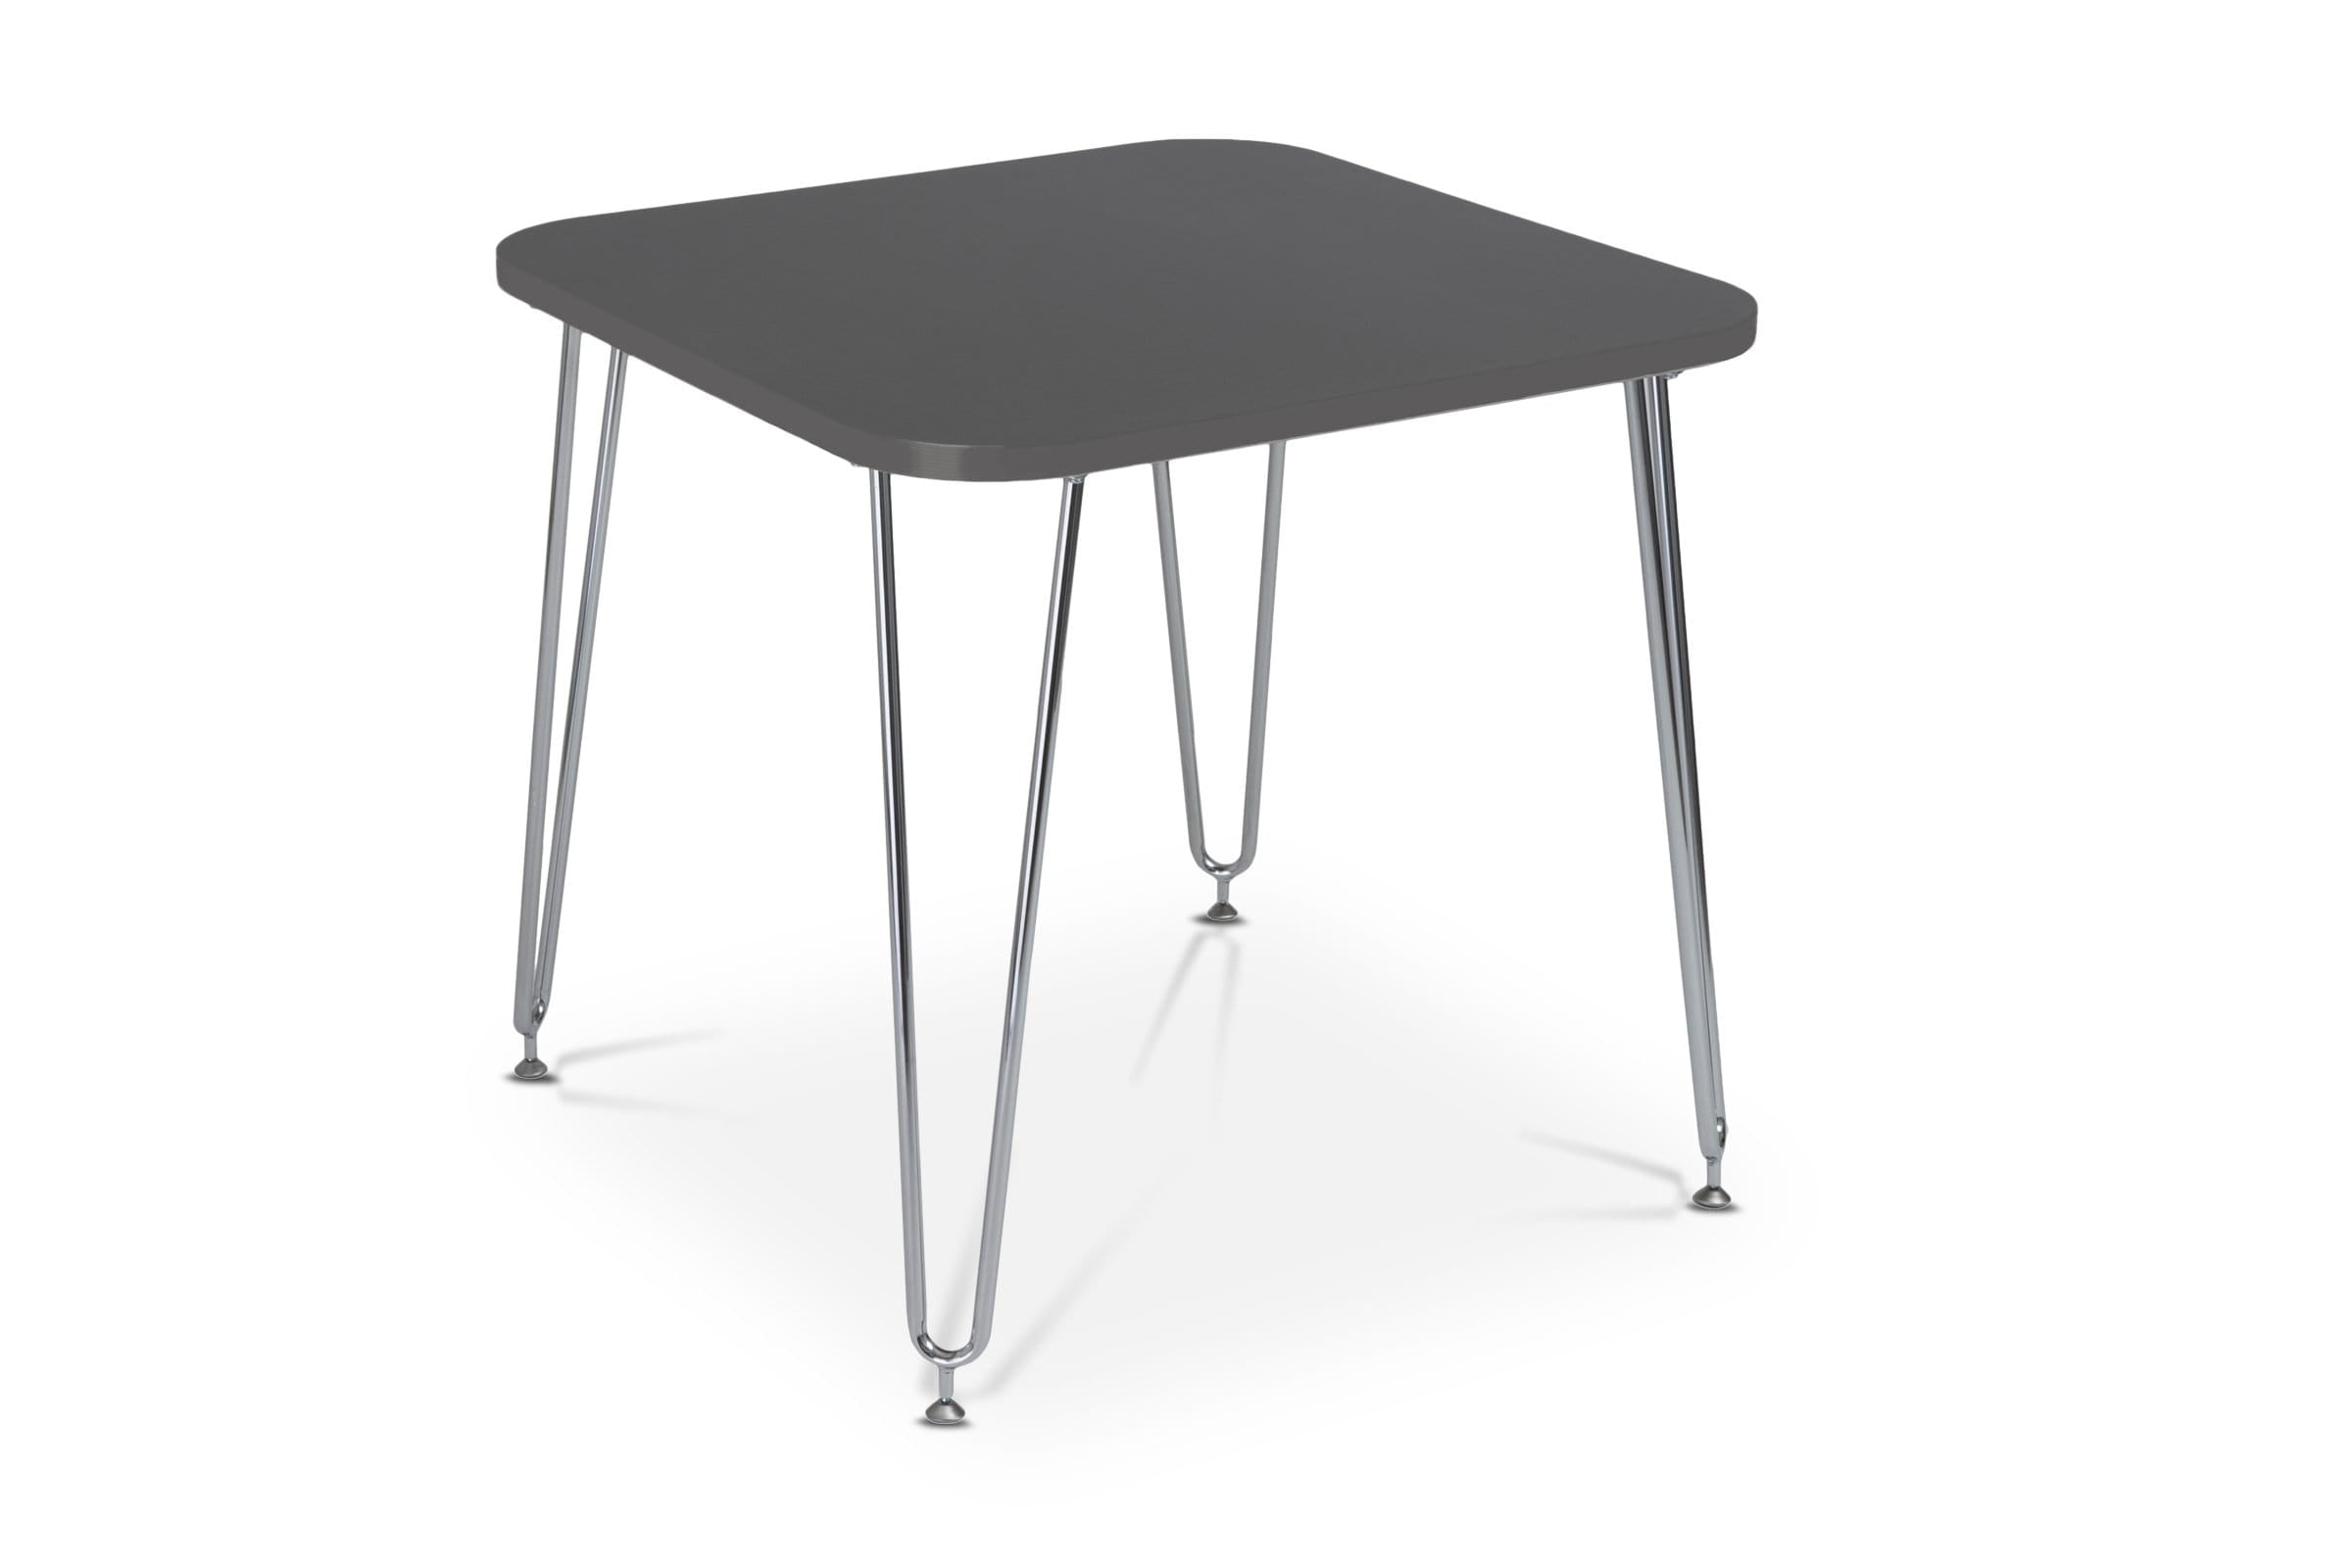 Rosemead Table GRAY/CHROME - Modern Dining Tables Sold by Apt2B